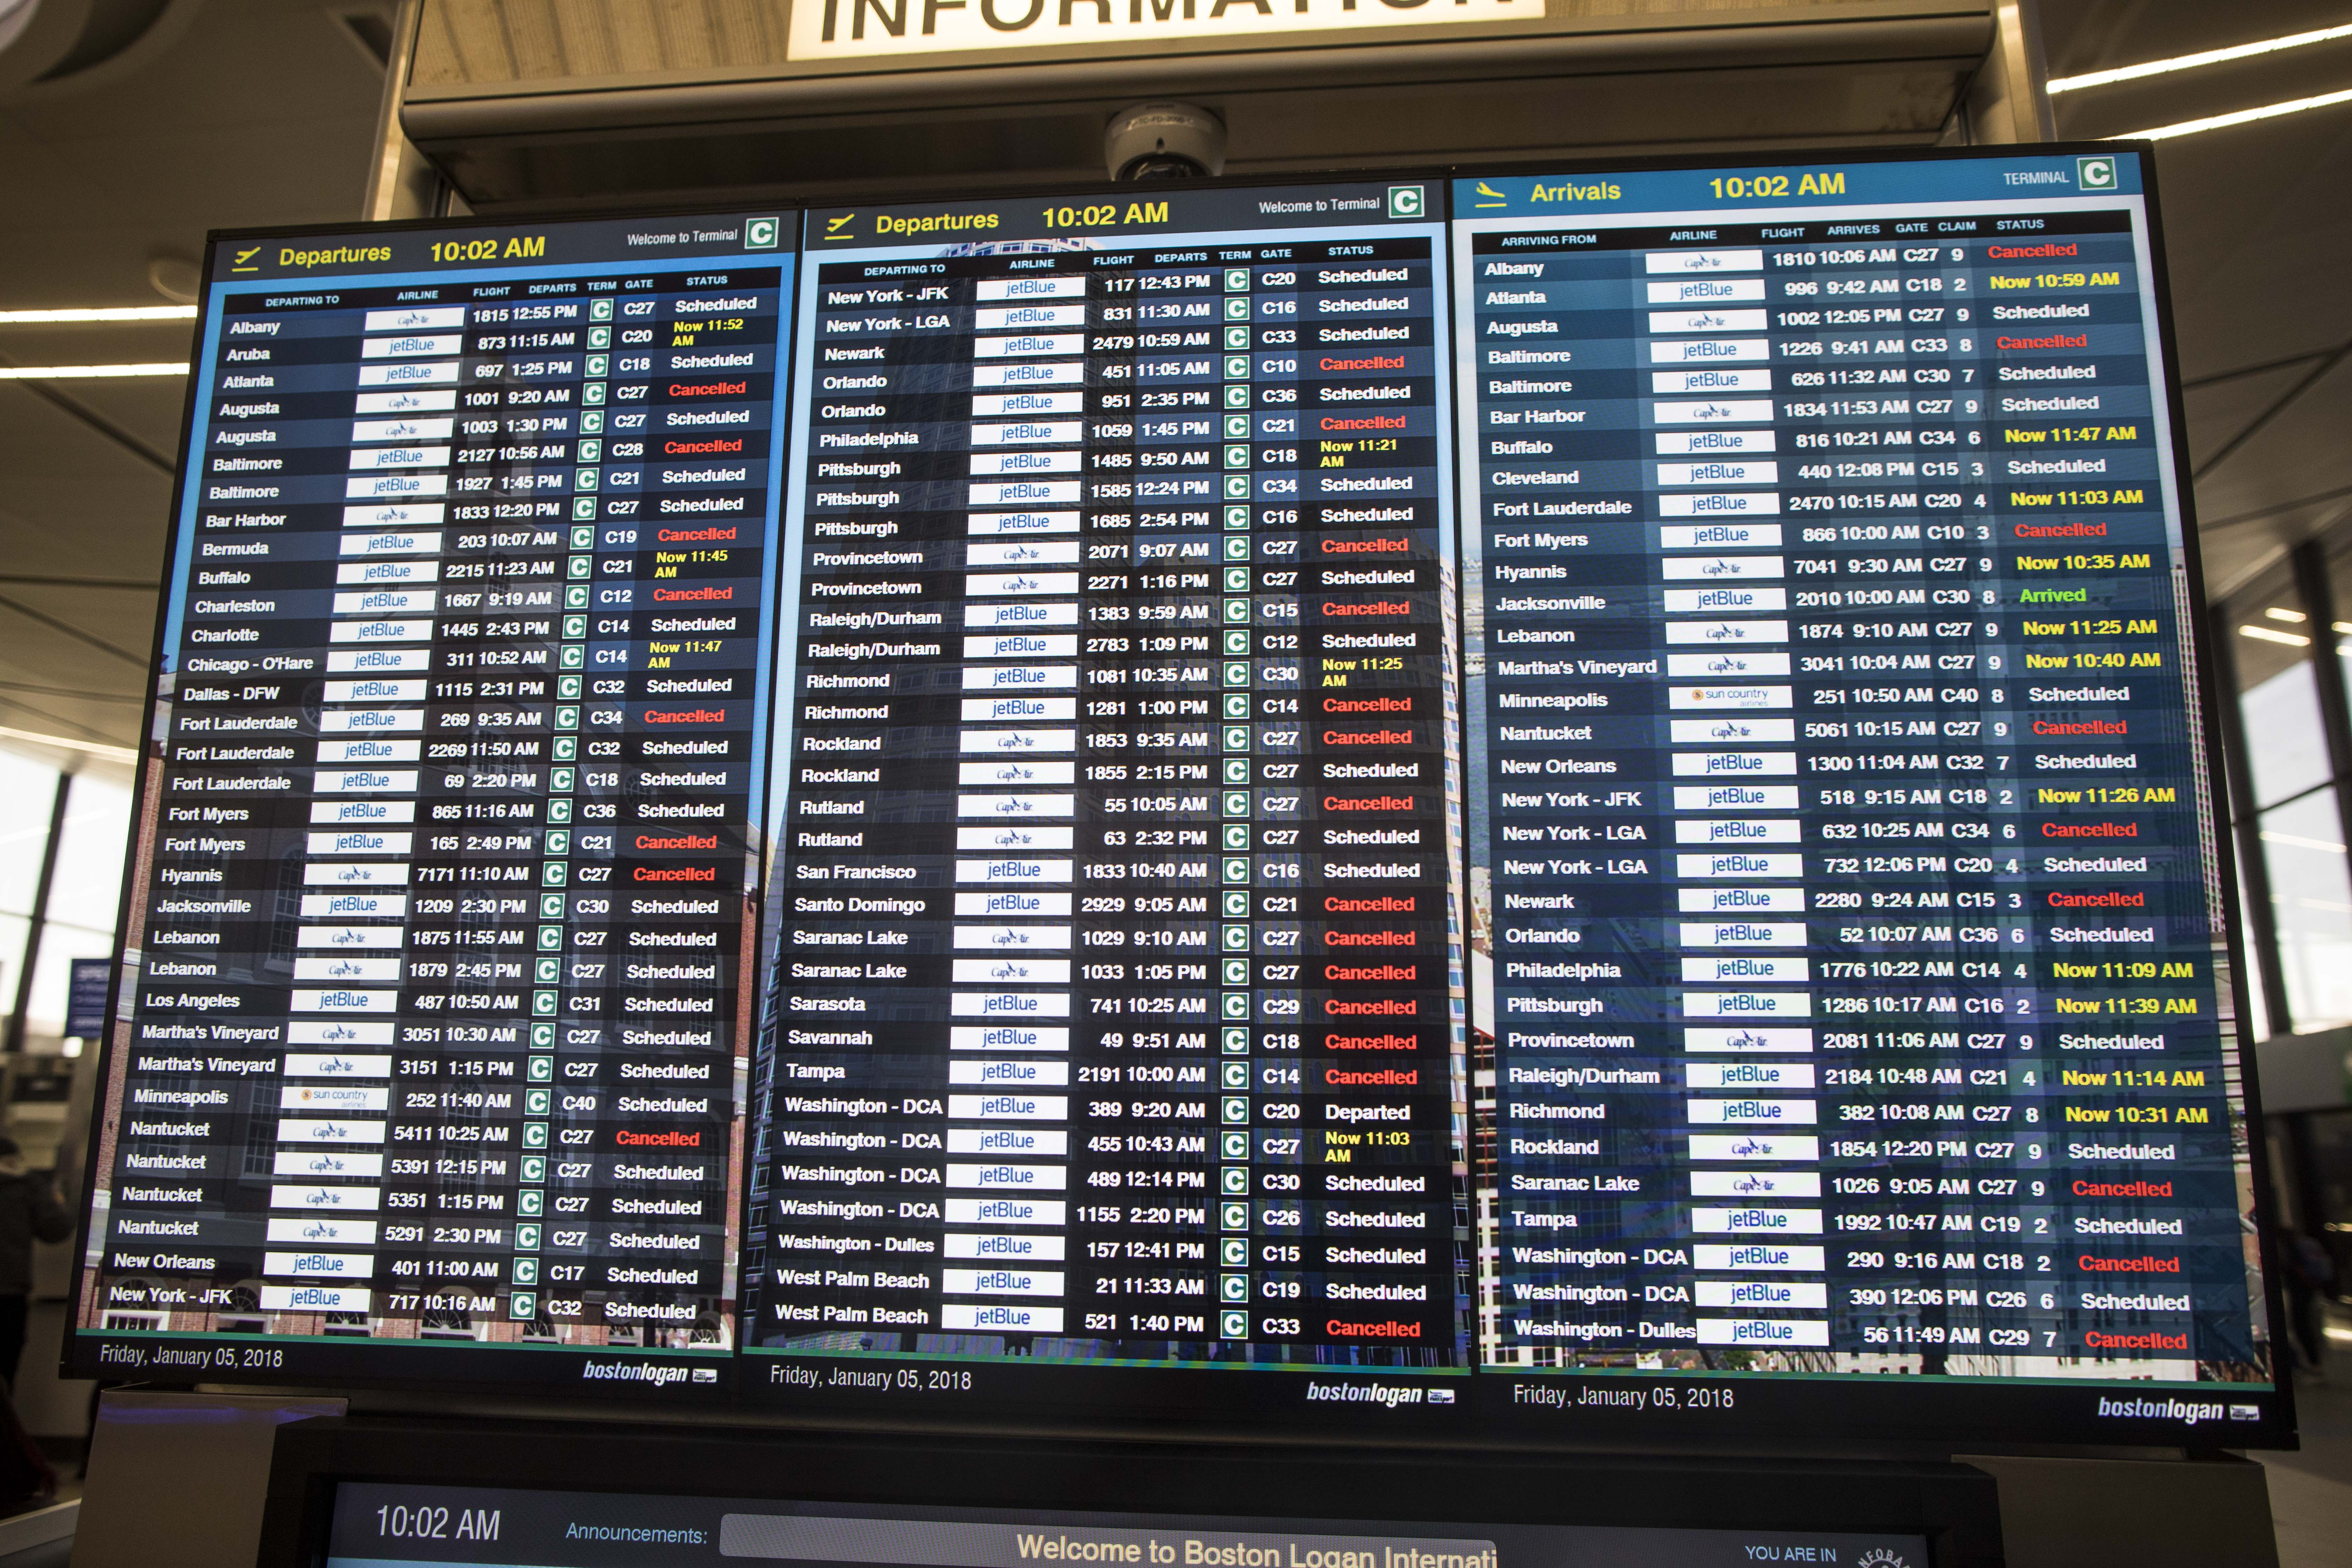 Tuesday: Most Boston flights grounded, 1,500+ cancellations nationwide